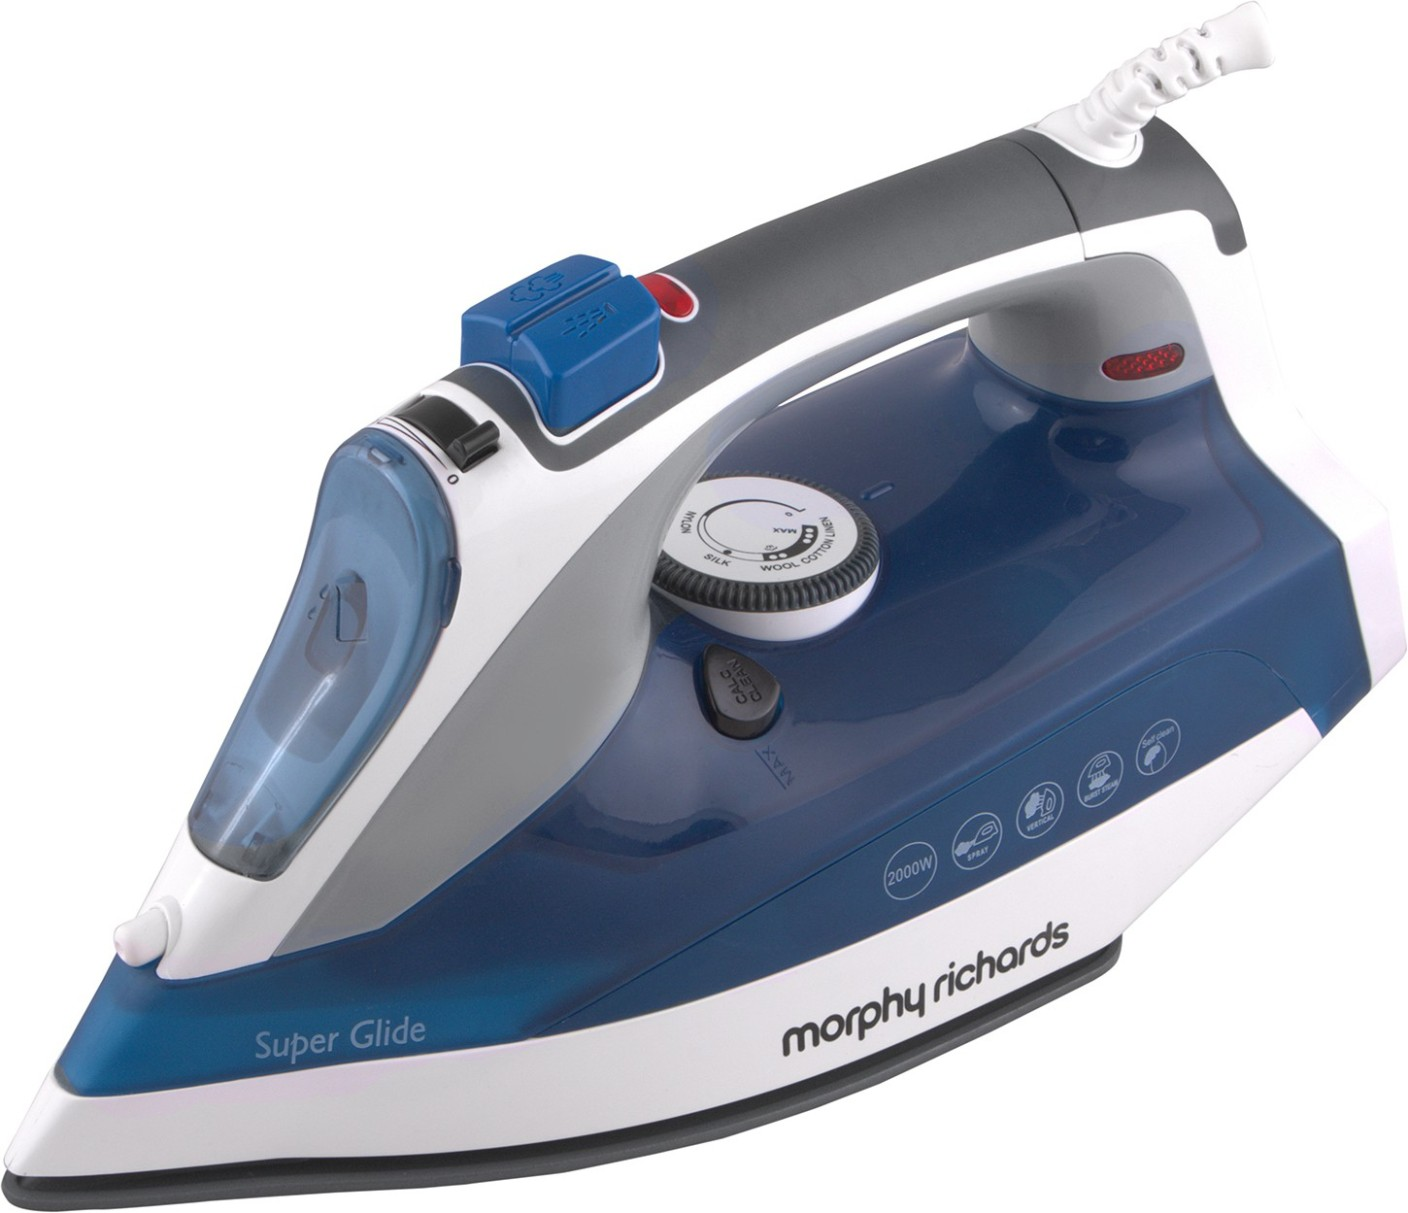 Morphy Richards India: Morphy Richards Super Glide Steam Iron Price In India